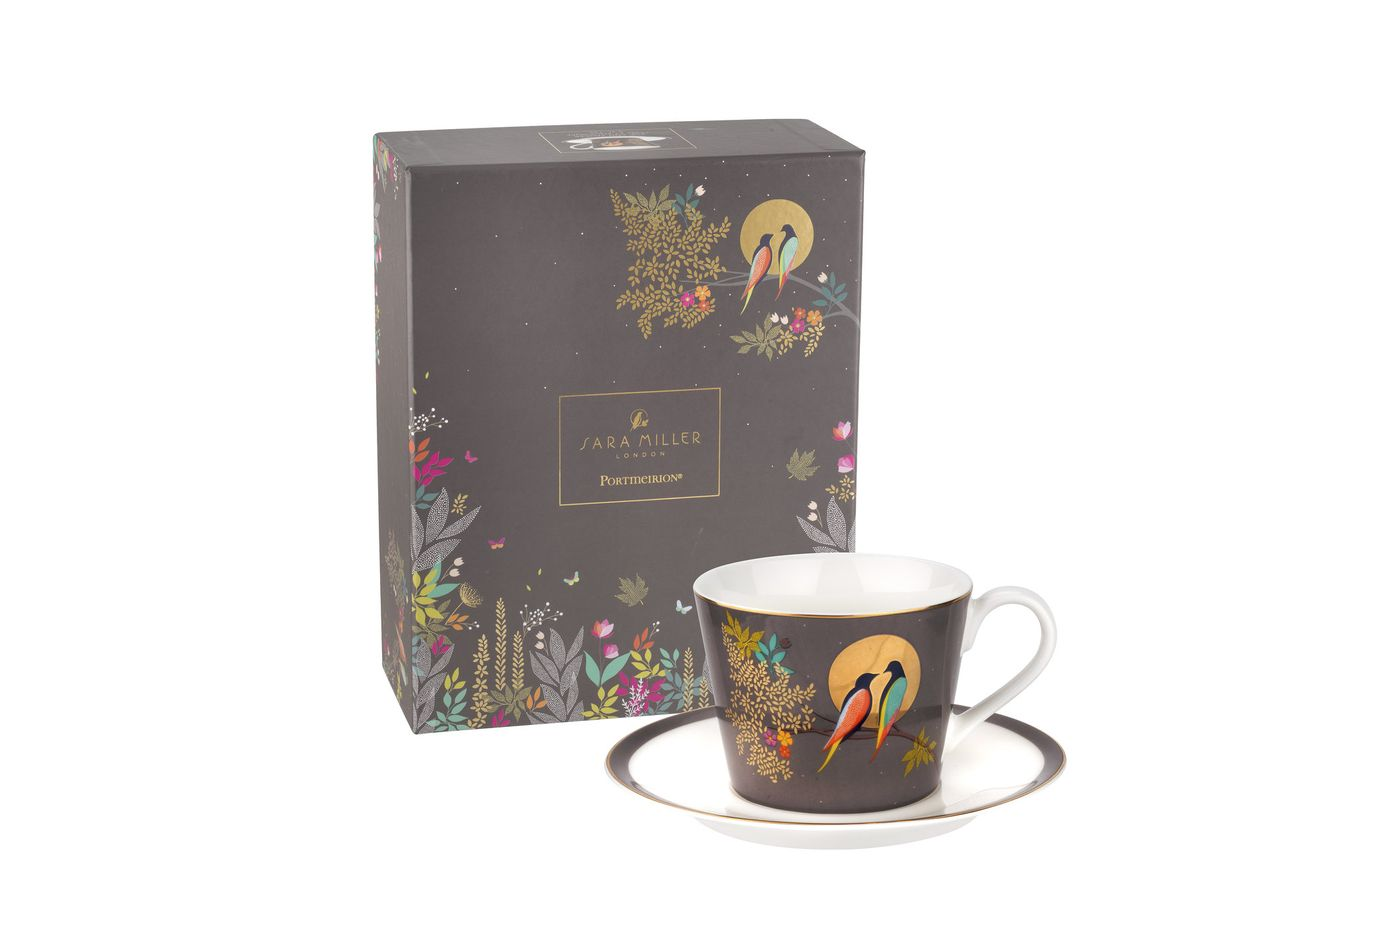 Sara Miller London for Portmeirion Chelsea Collection Teacup & Saucer Dark Grey 0.2l thumb 2